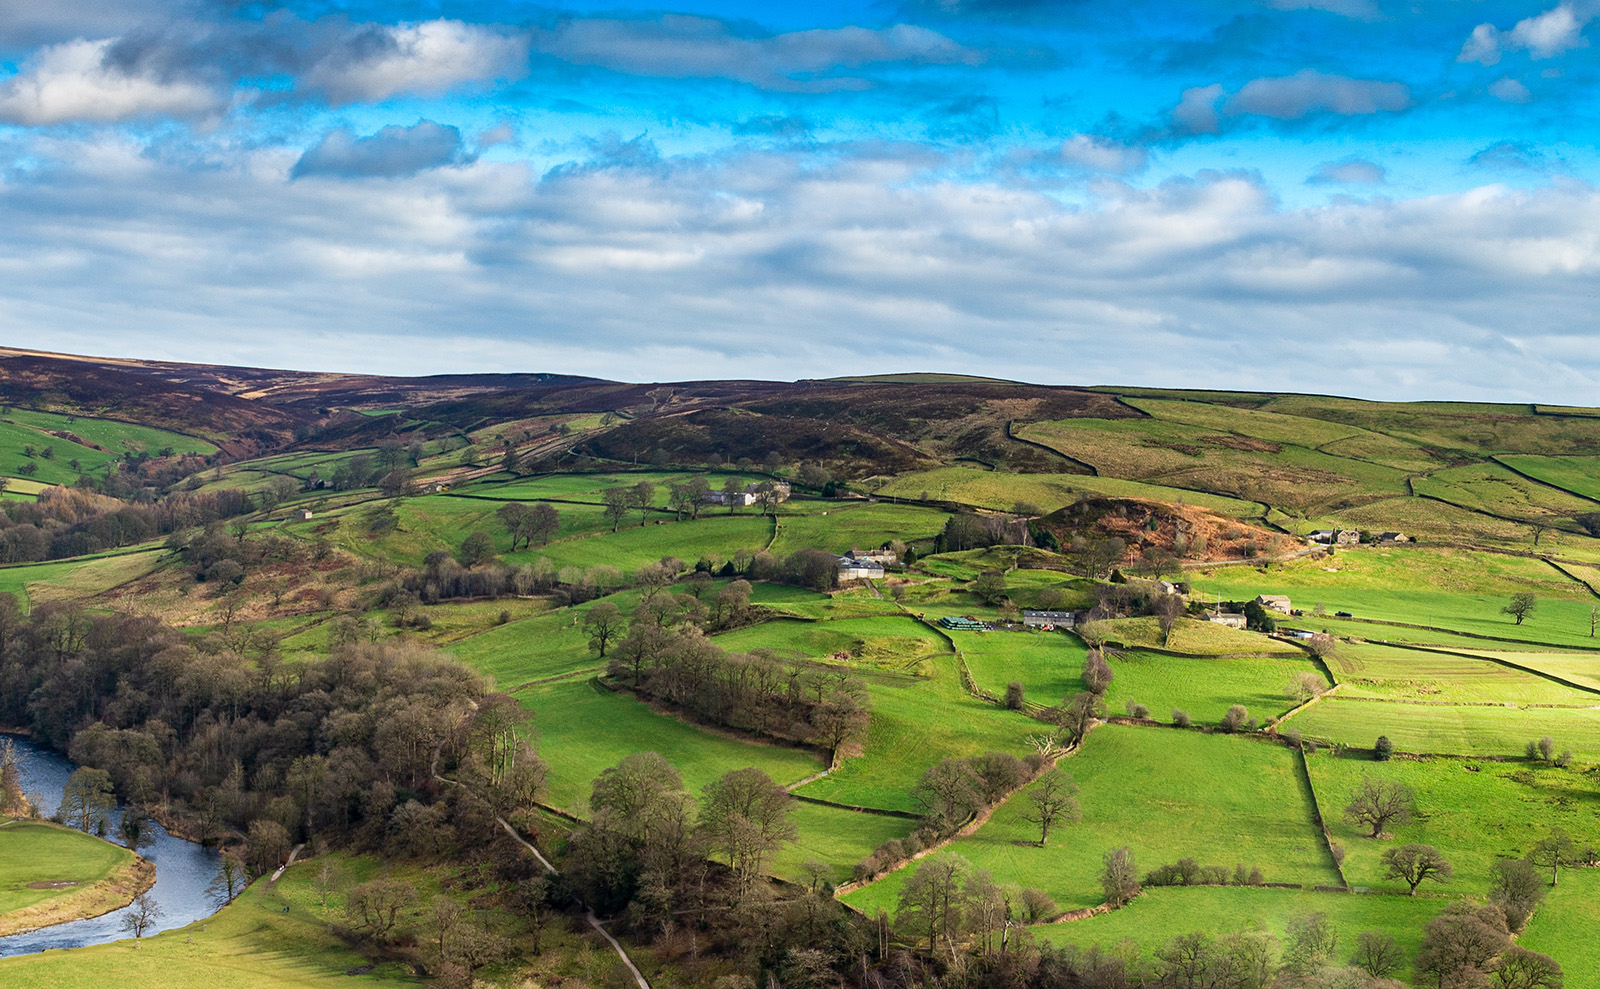 Travel to Victorian Yorkshire and Meet the Remarkable Heroine of 'The Tenant of Wildfell Hall'